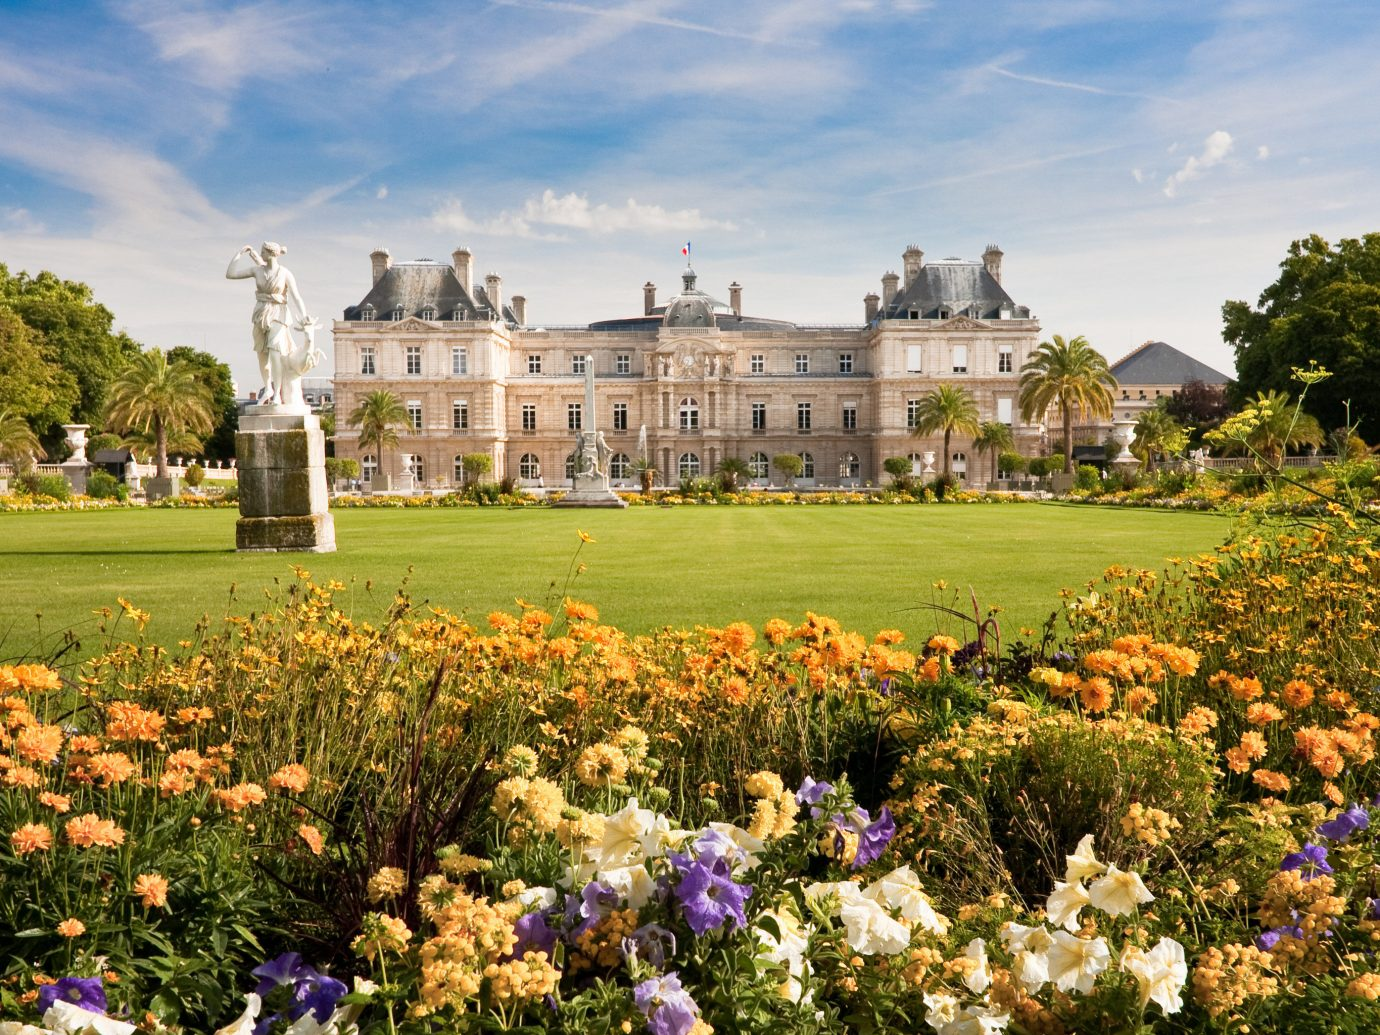 France Hotels Paris Trip Ideas flower grass outdoor tree sky château Garden estate tourism park rural area lawn autumn palace castle plant surrounded pretty field crowd